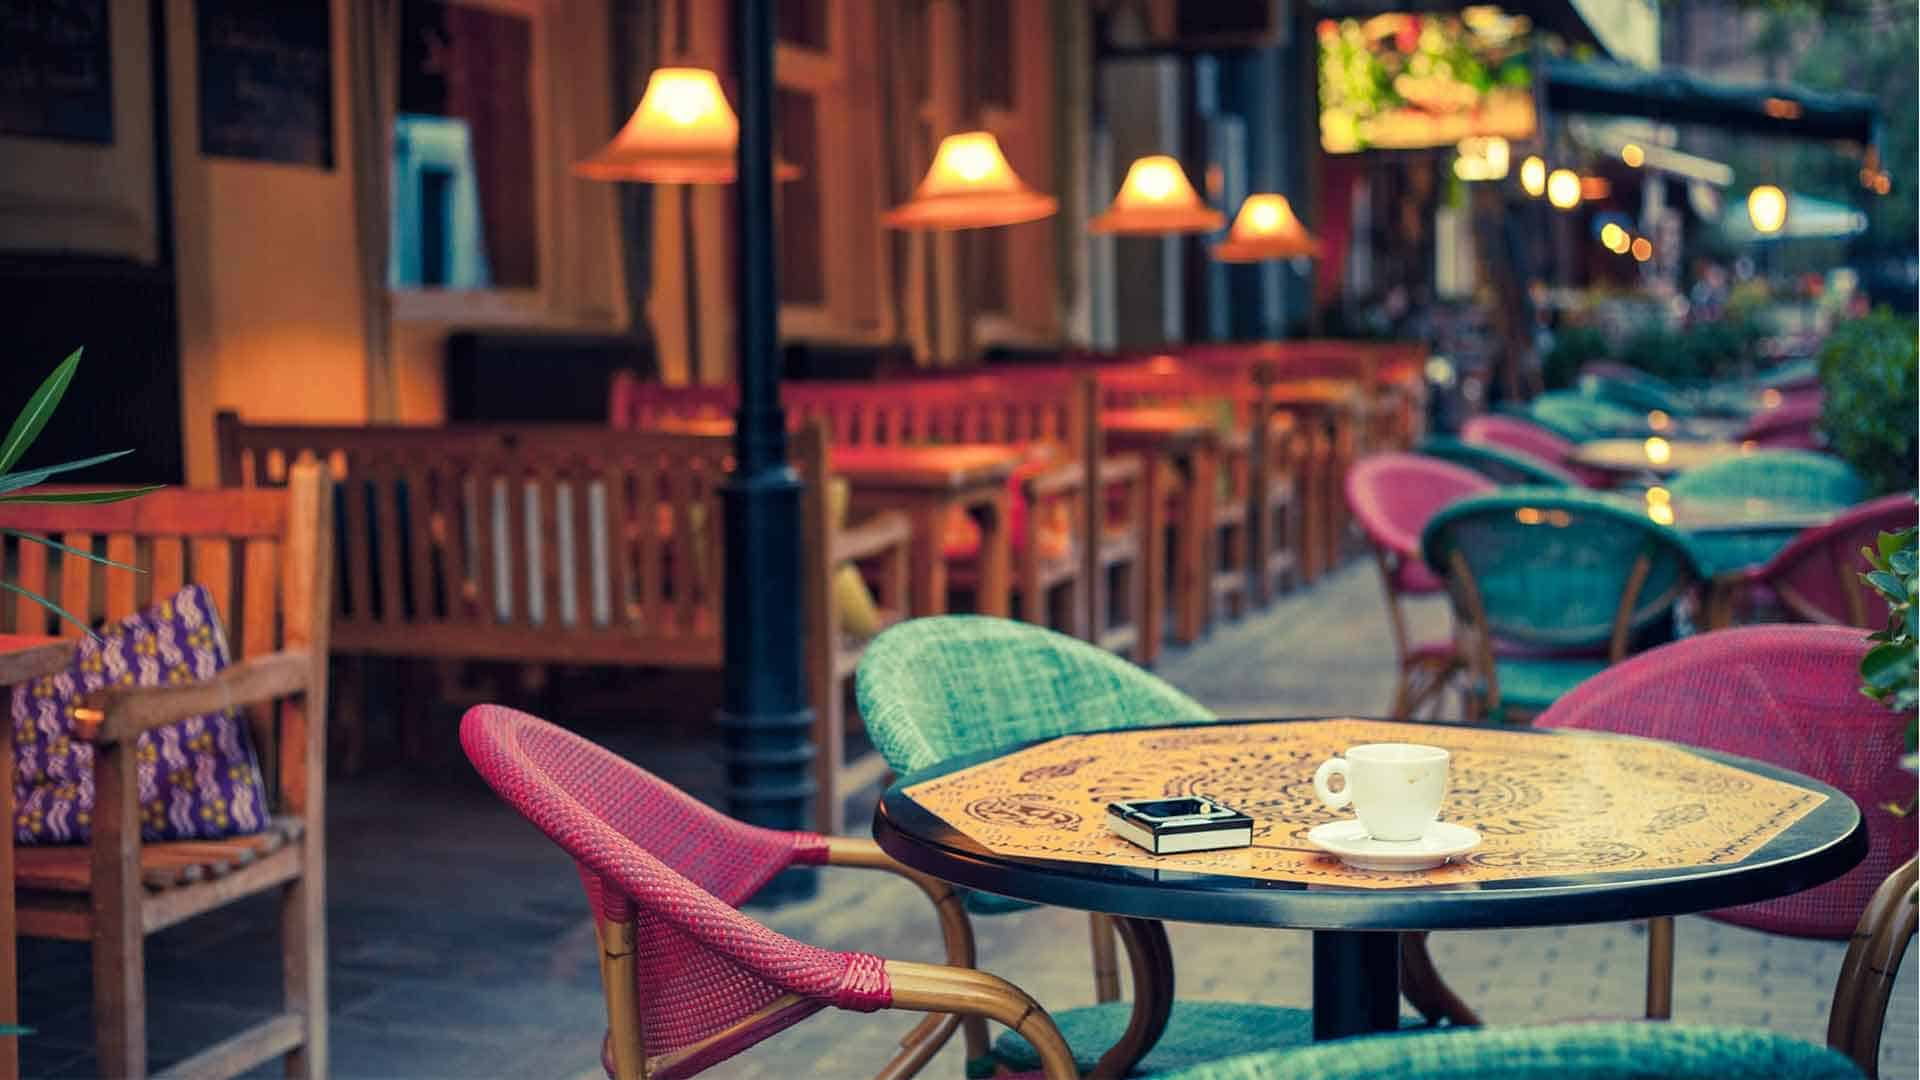 Low Budget Creative Decor Ideas For Opening A Cafe